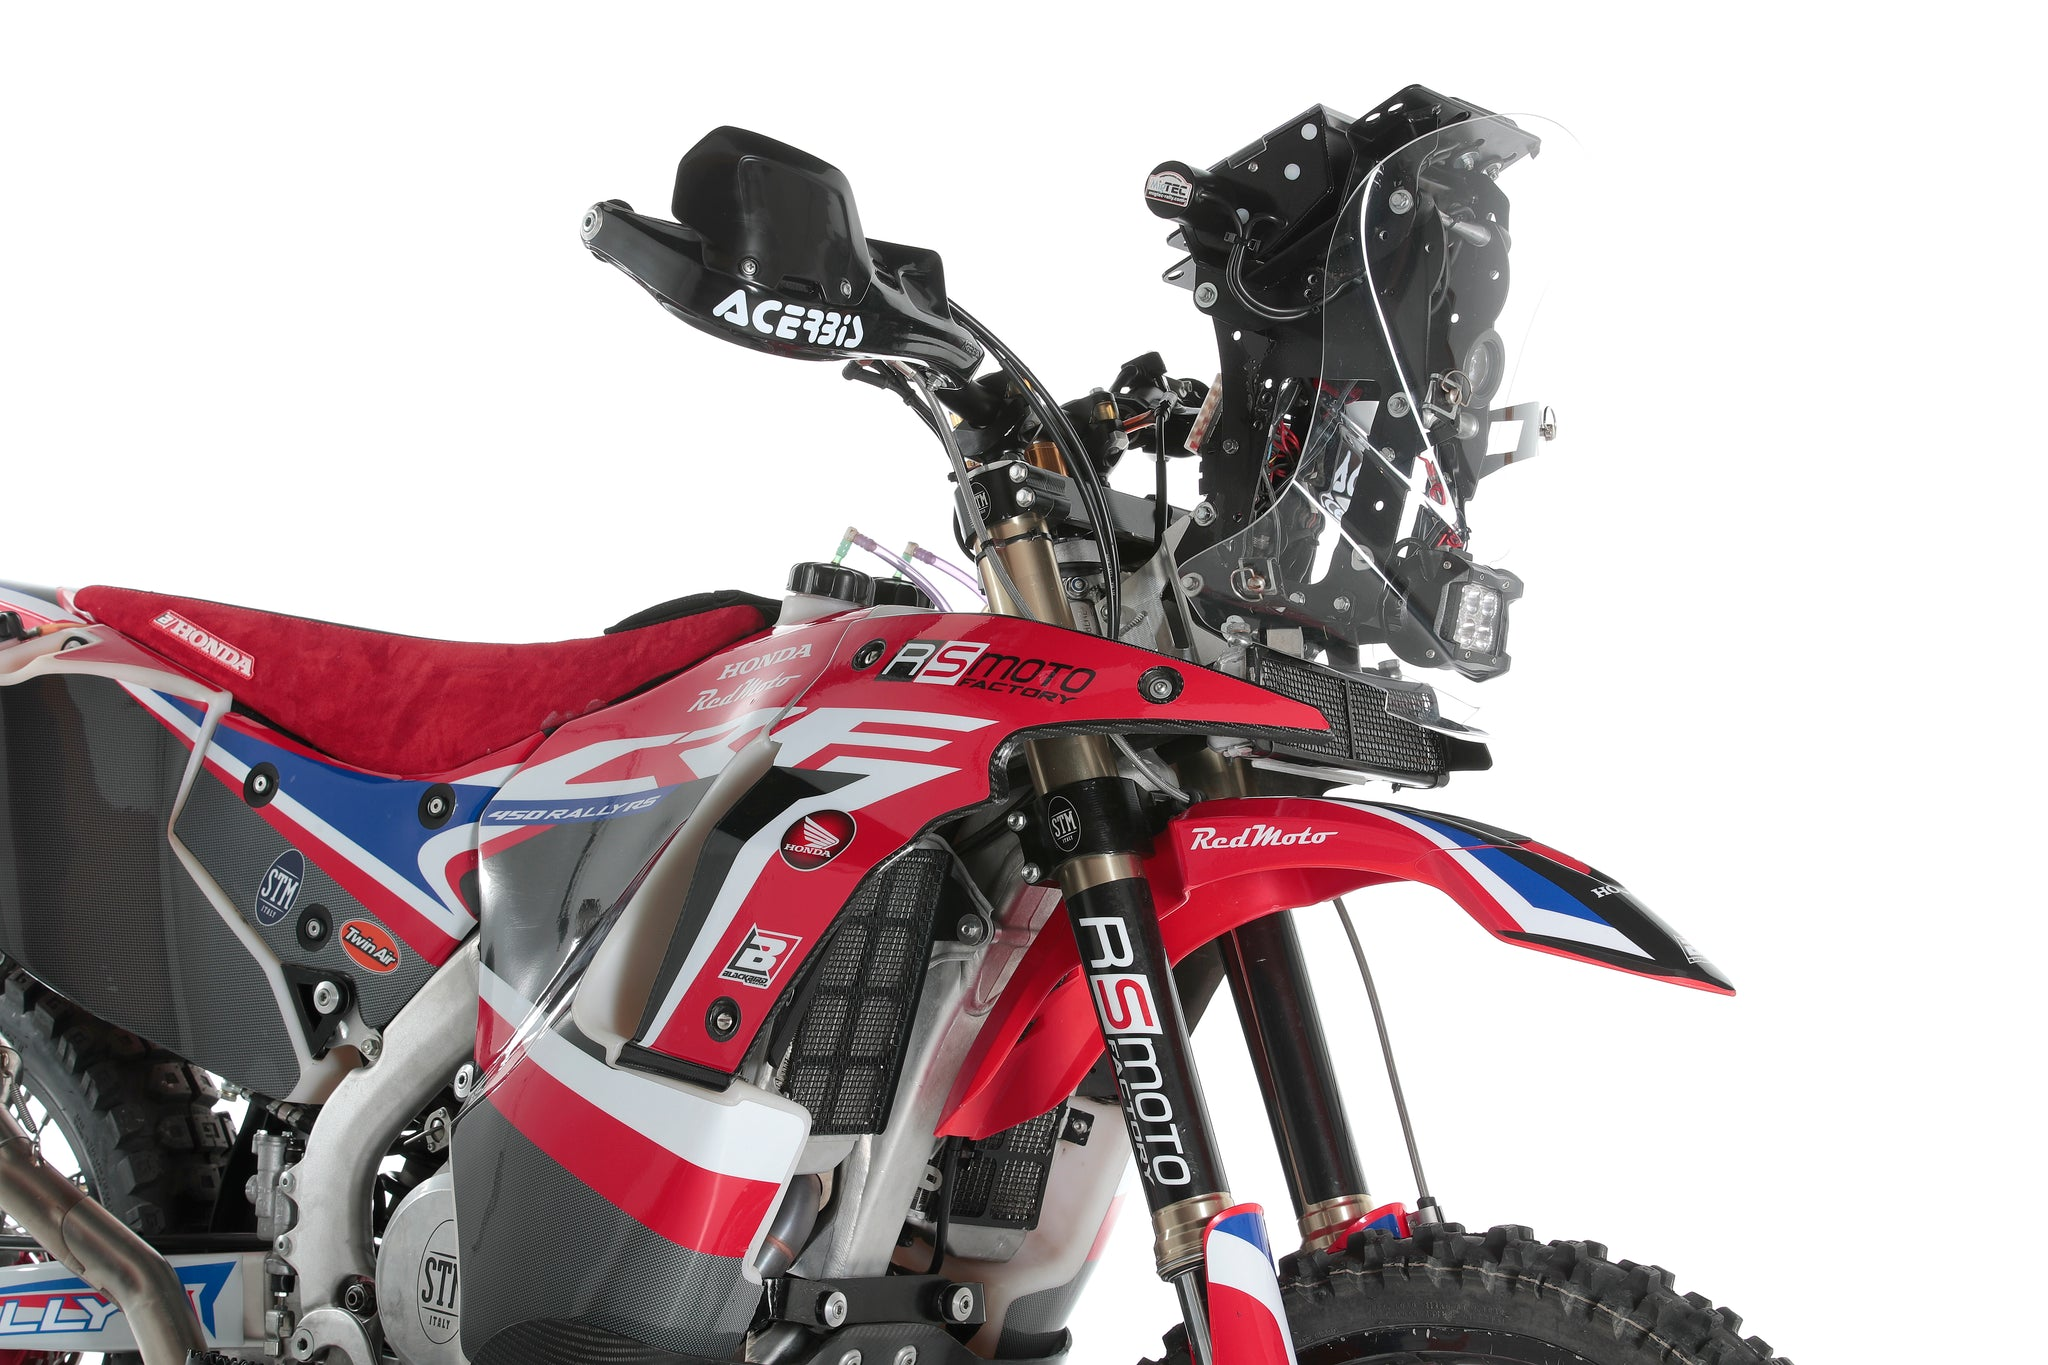 RS Moto Rally Kit for Honda CRF 450rx